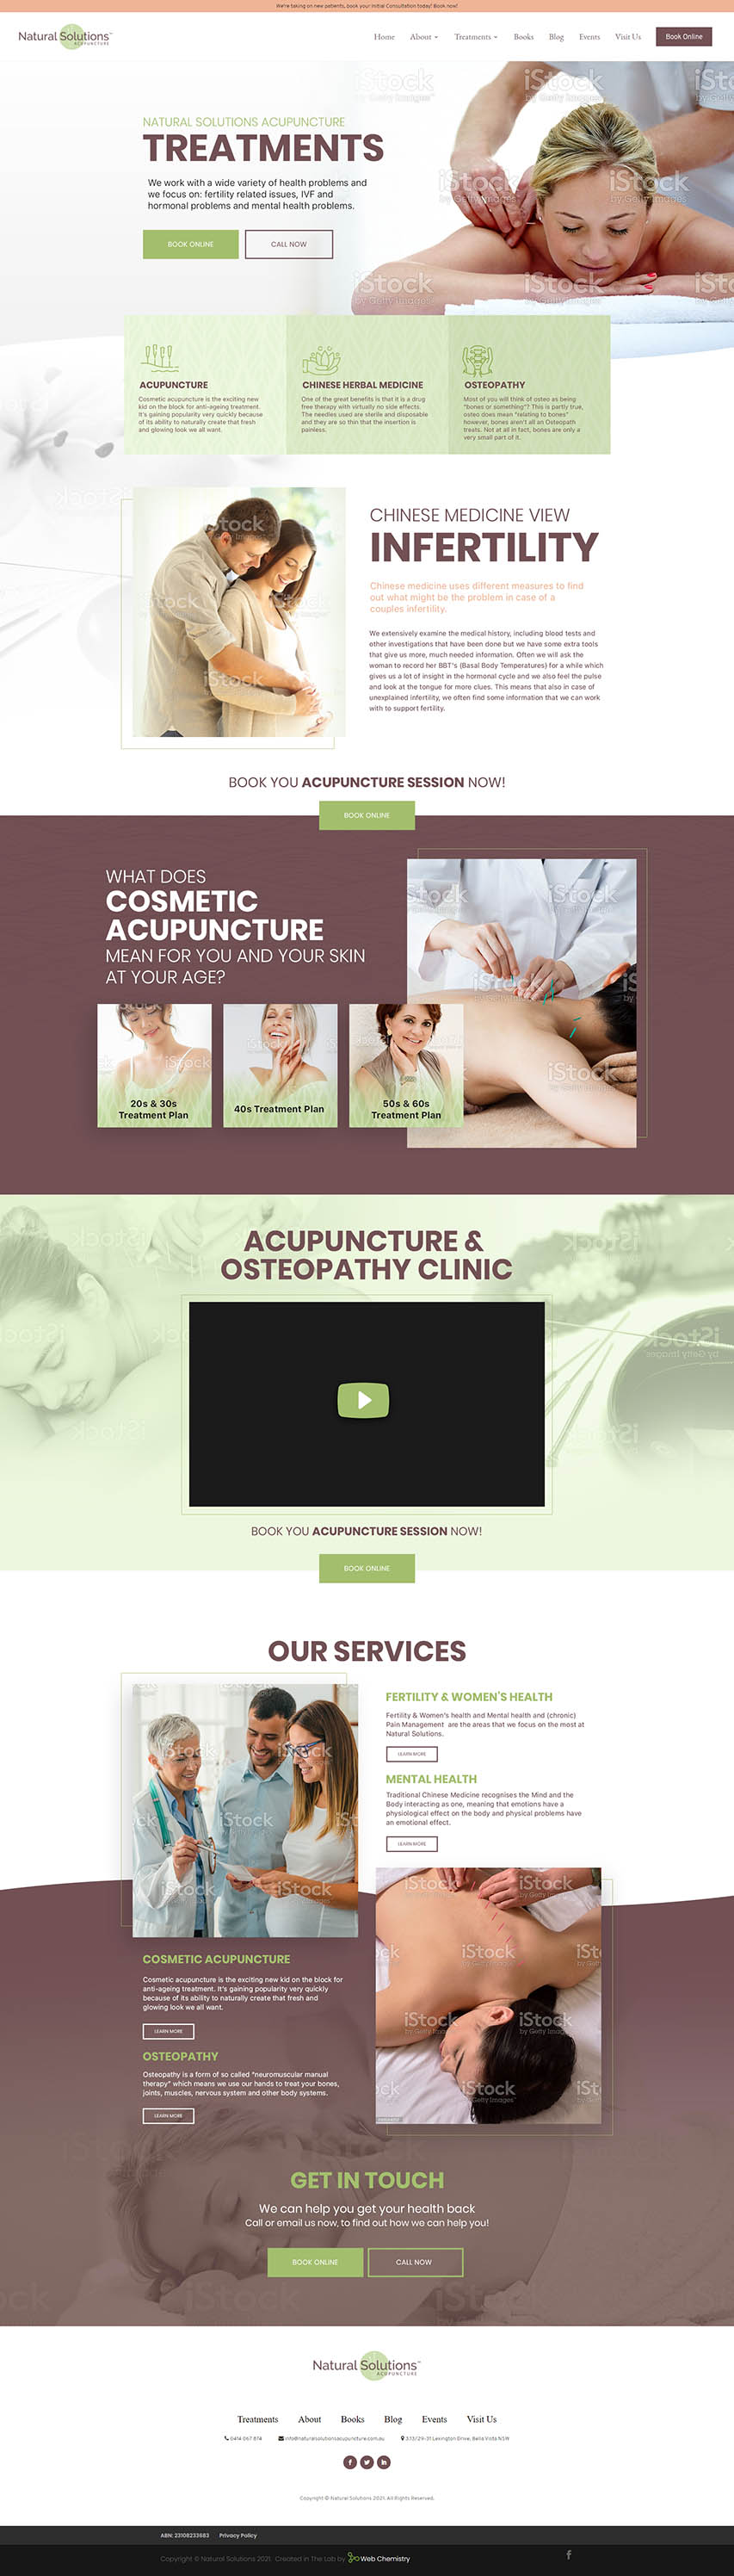 Natural Acupuncture Homepage